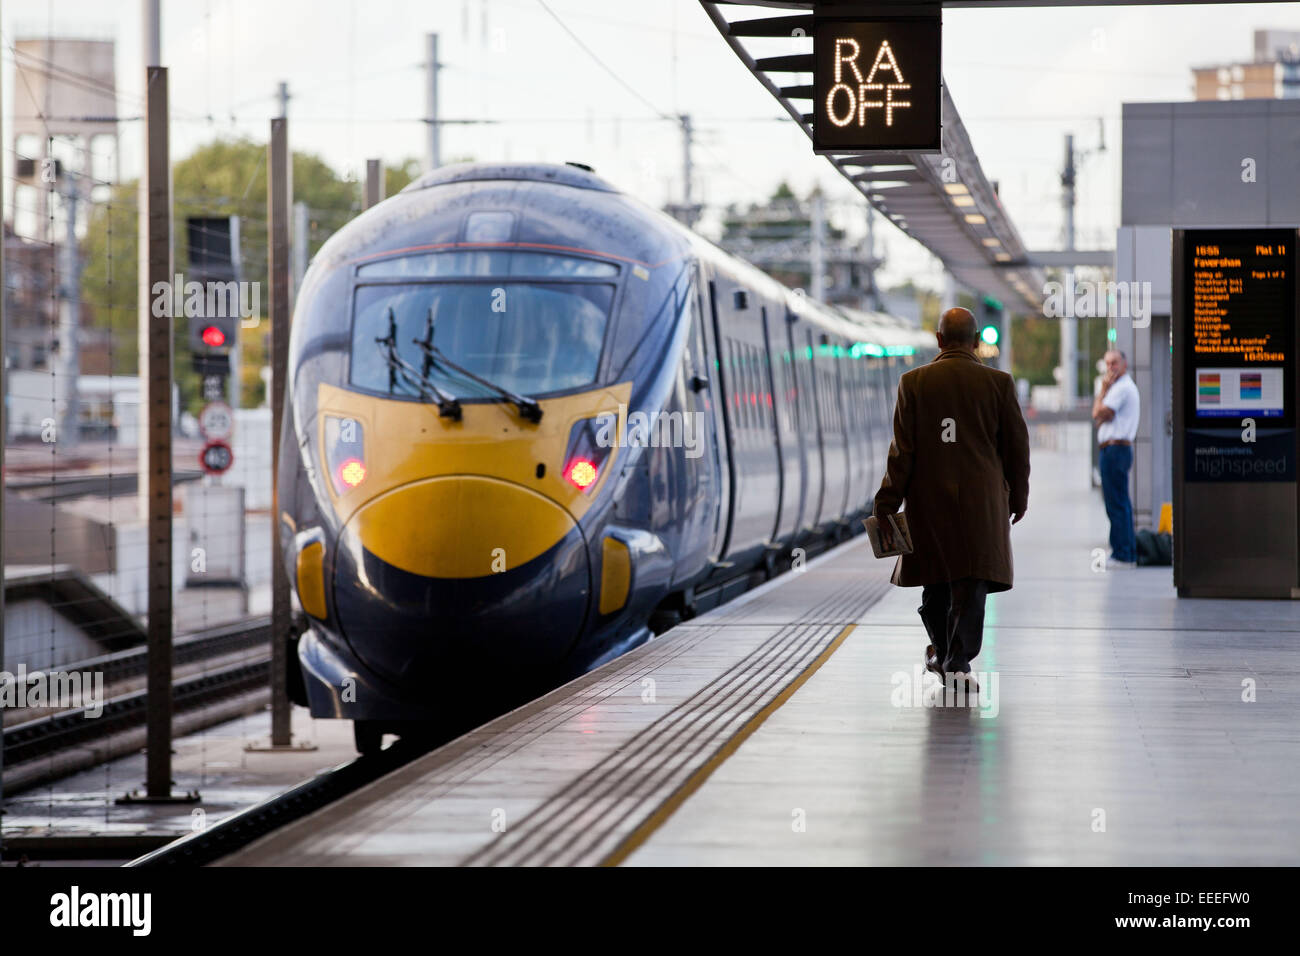 Class 395 Southeastern high speed train at the platform at St. Pancras International - Stock Image